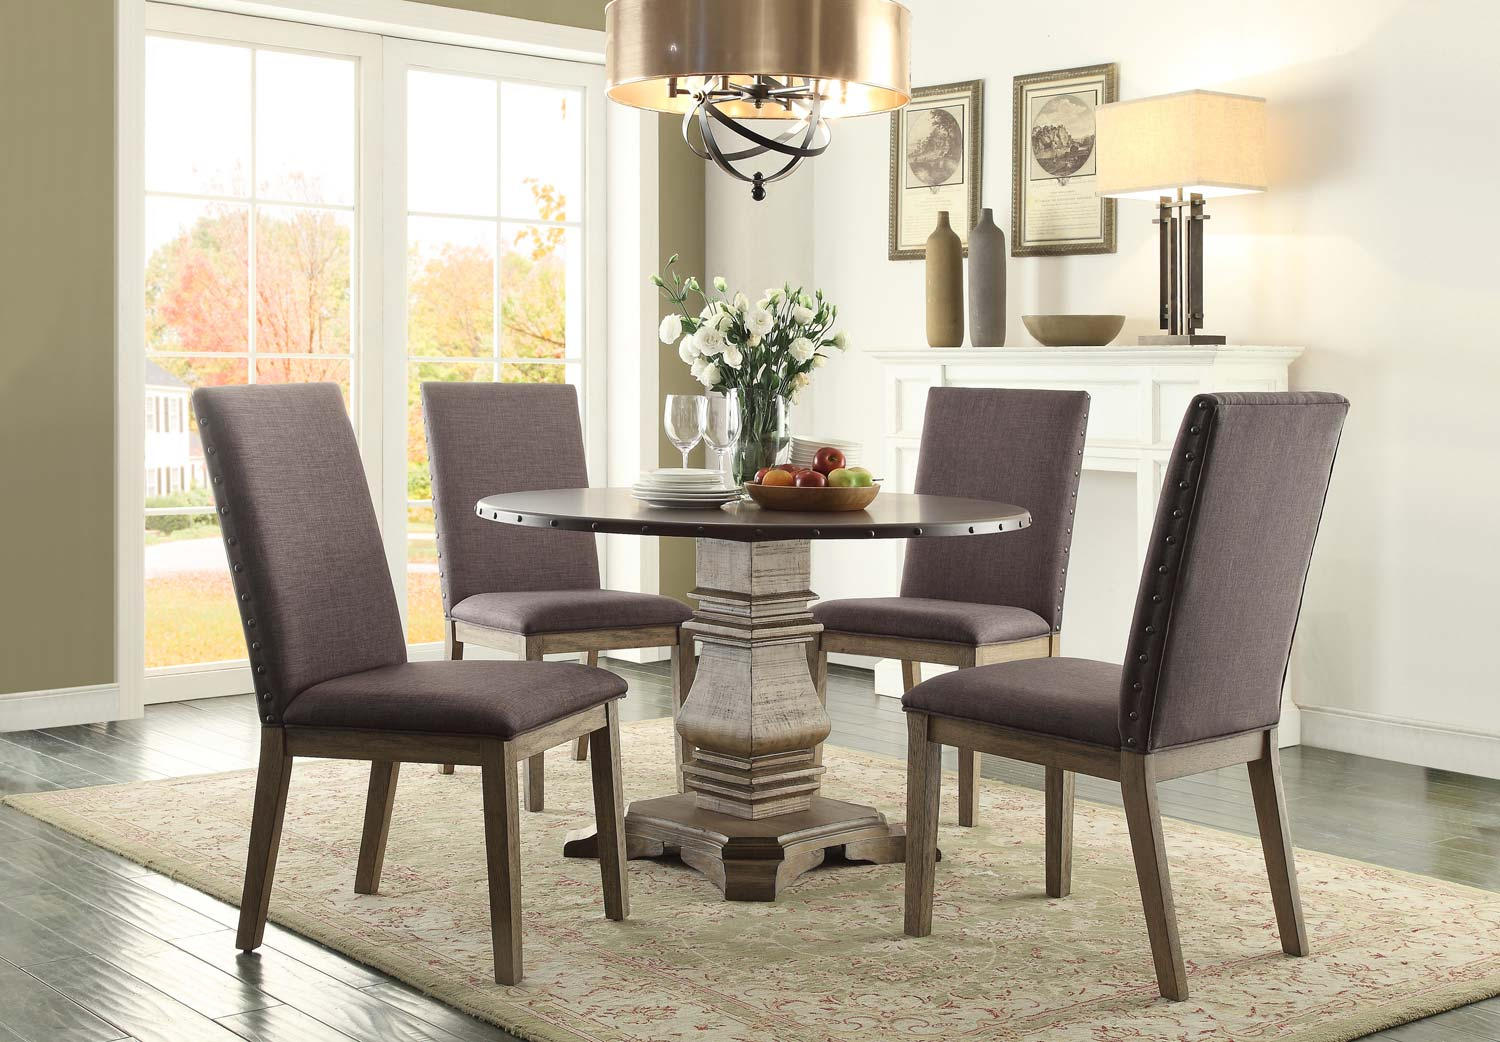 Homelegance Anna Claire Round Dining Set S1 - Driftwood/Zinc